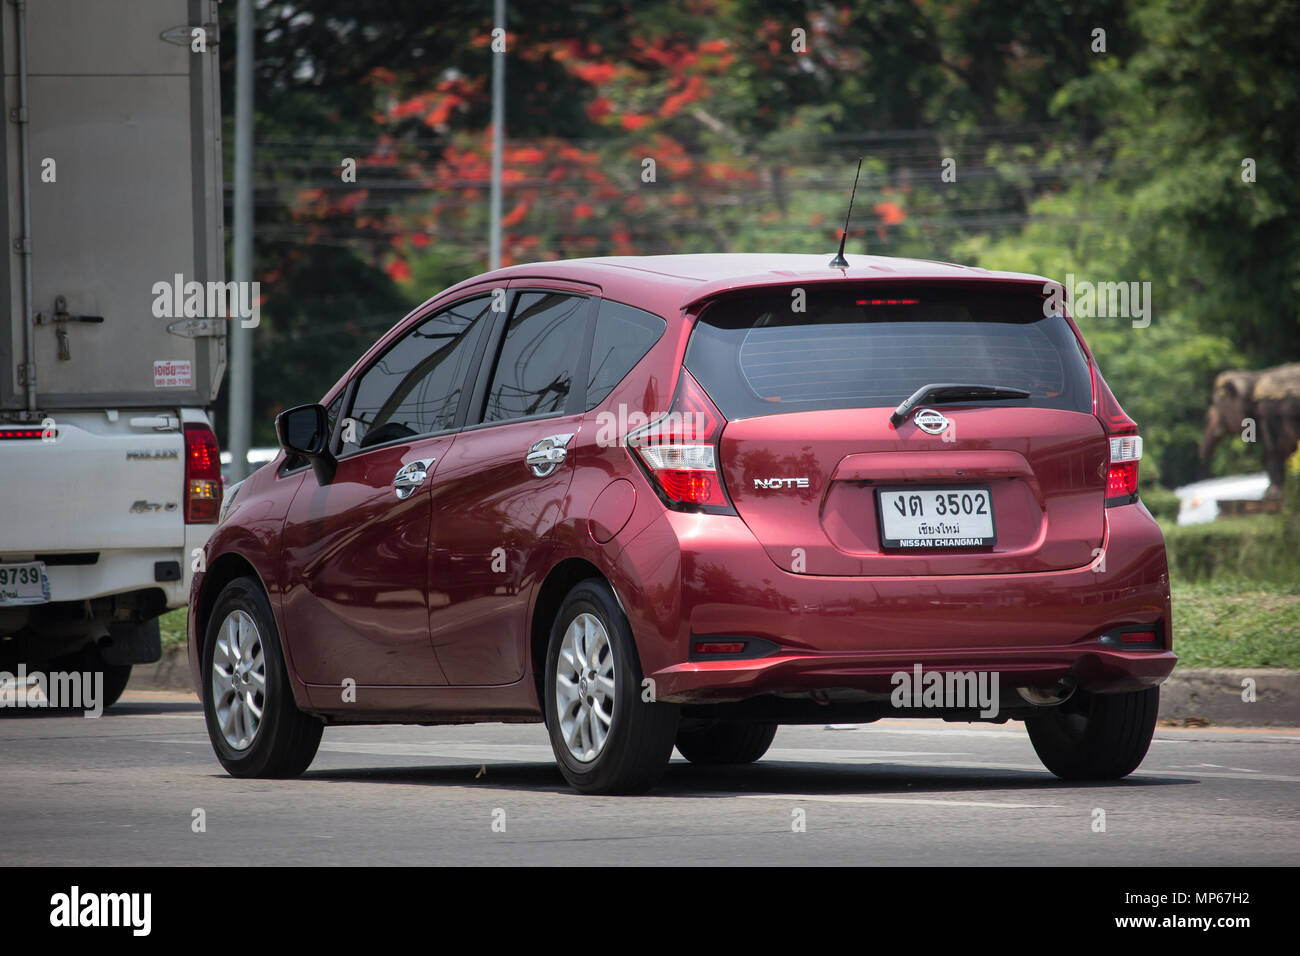 chiang mai, thailand - may 10 2018: private new eco car nissan note